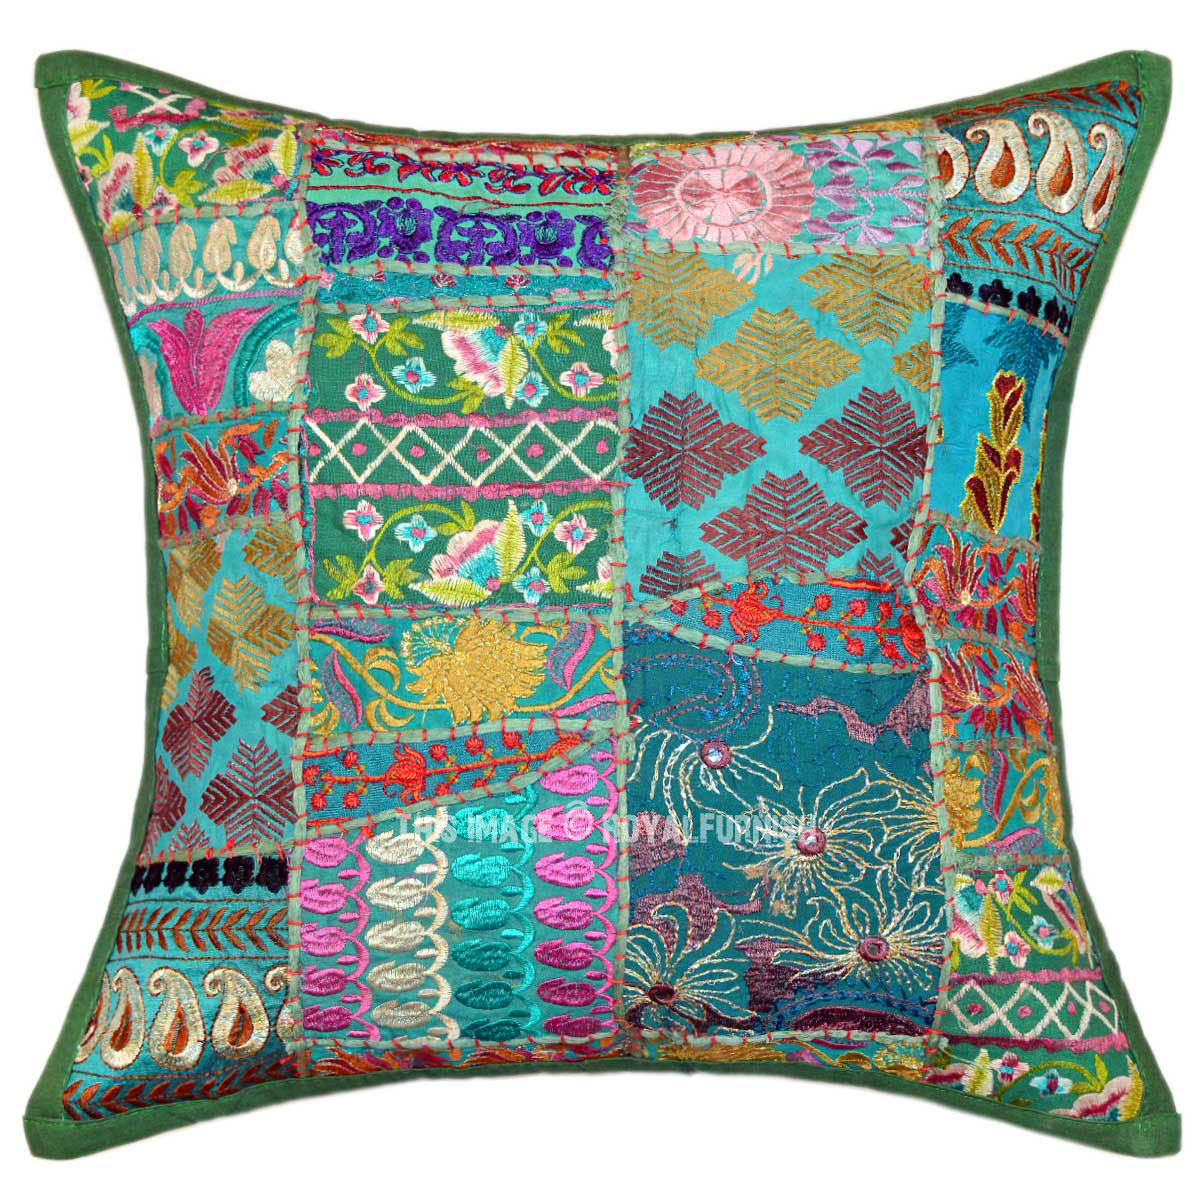 decorative sofa pillows queen anne style sleeper green 18x18 unique patchwork throw pillow case